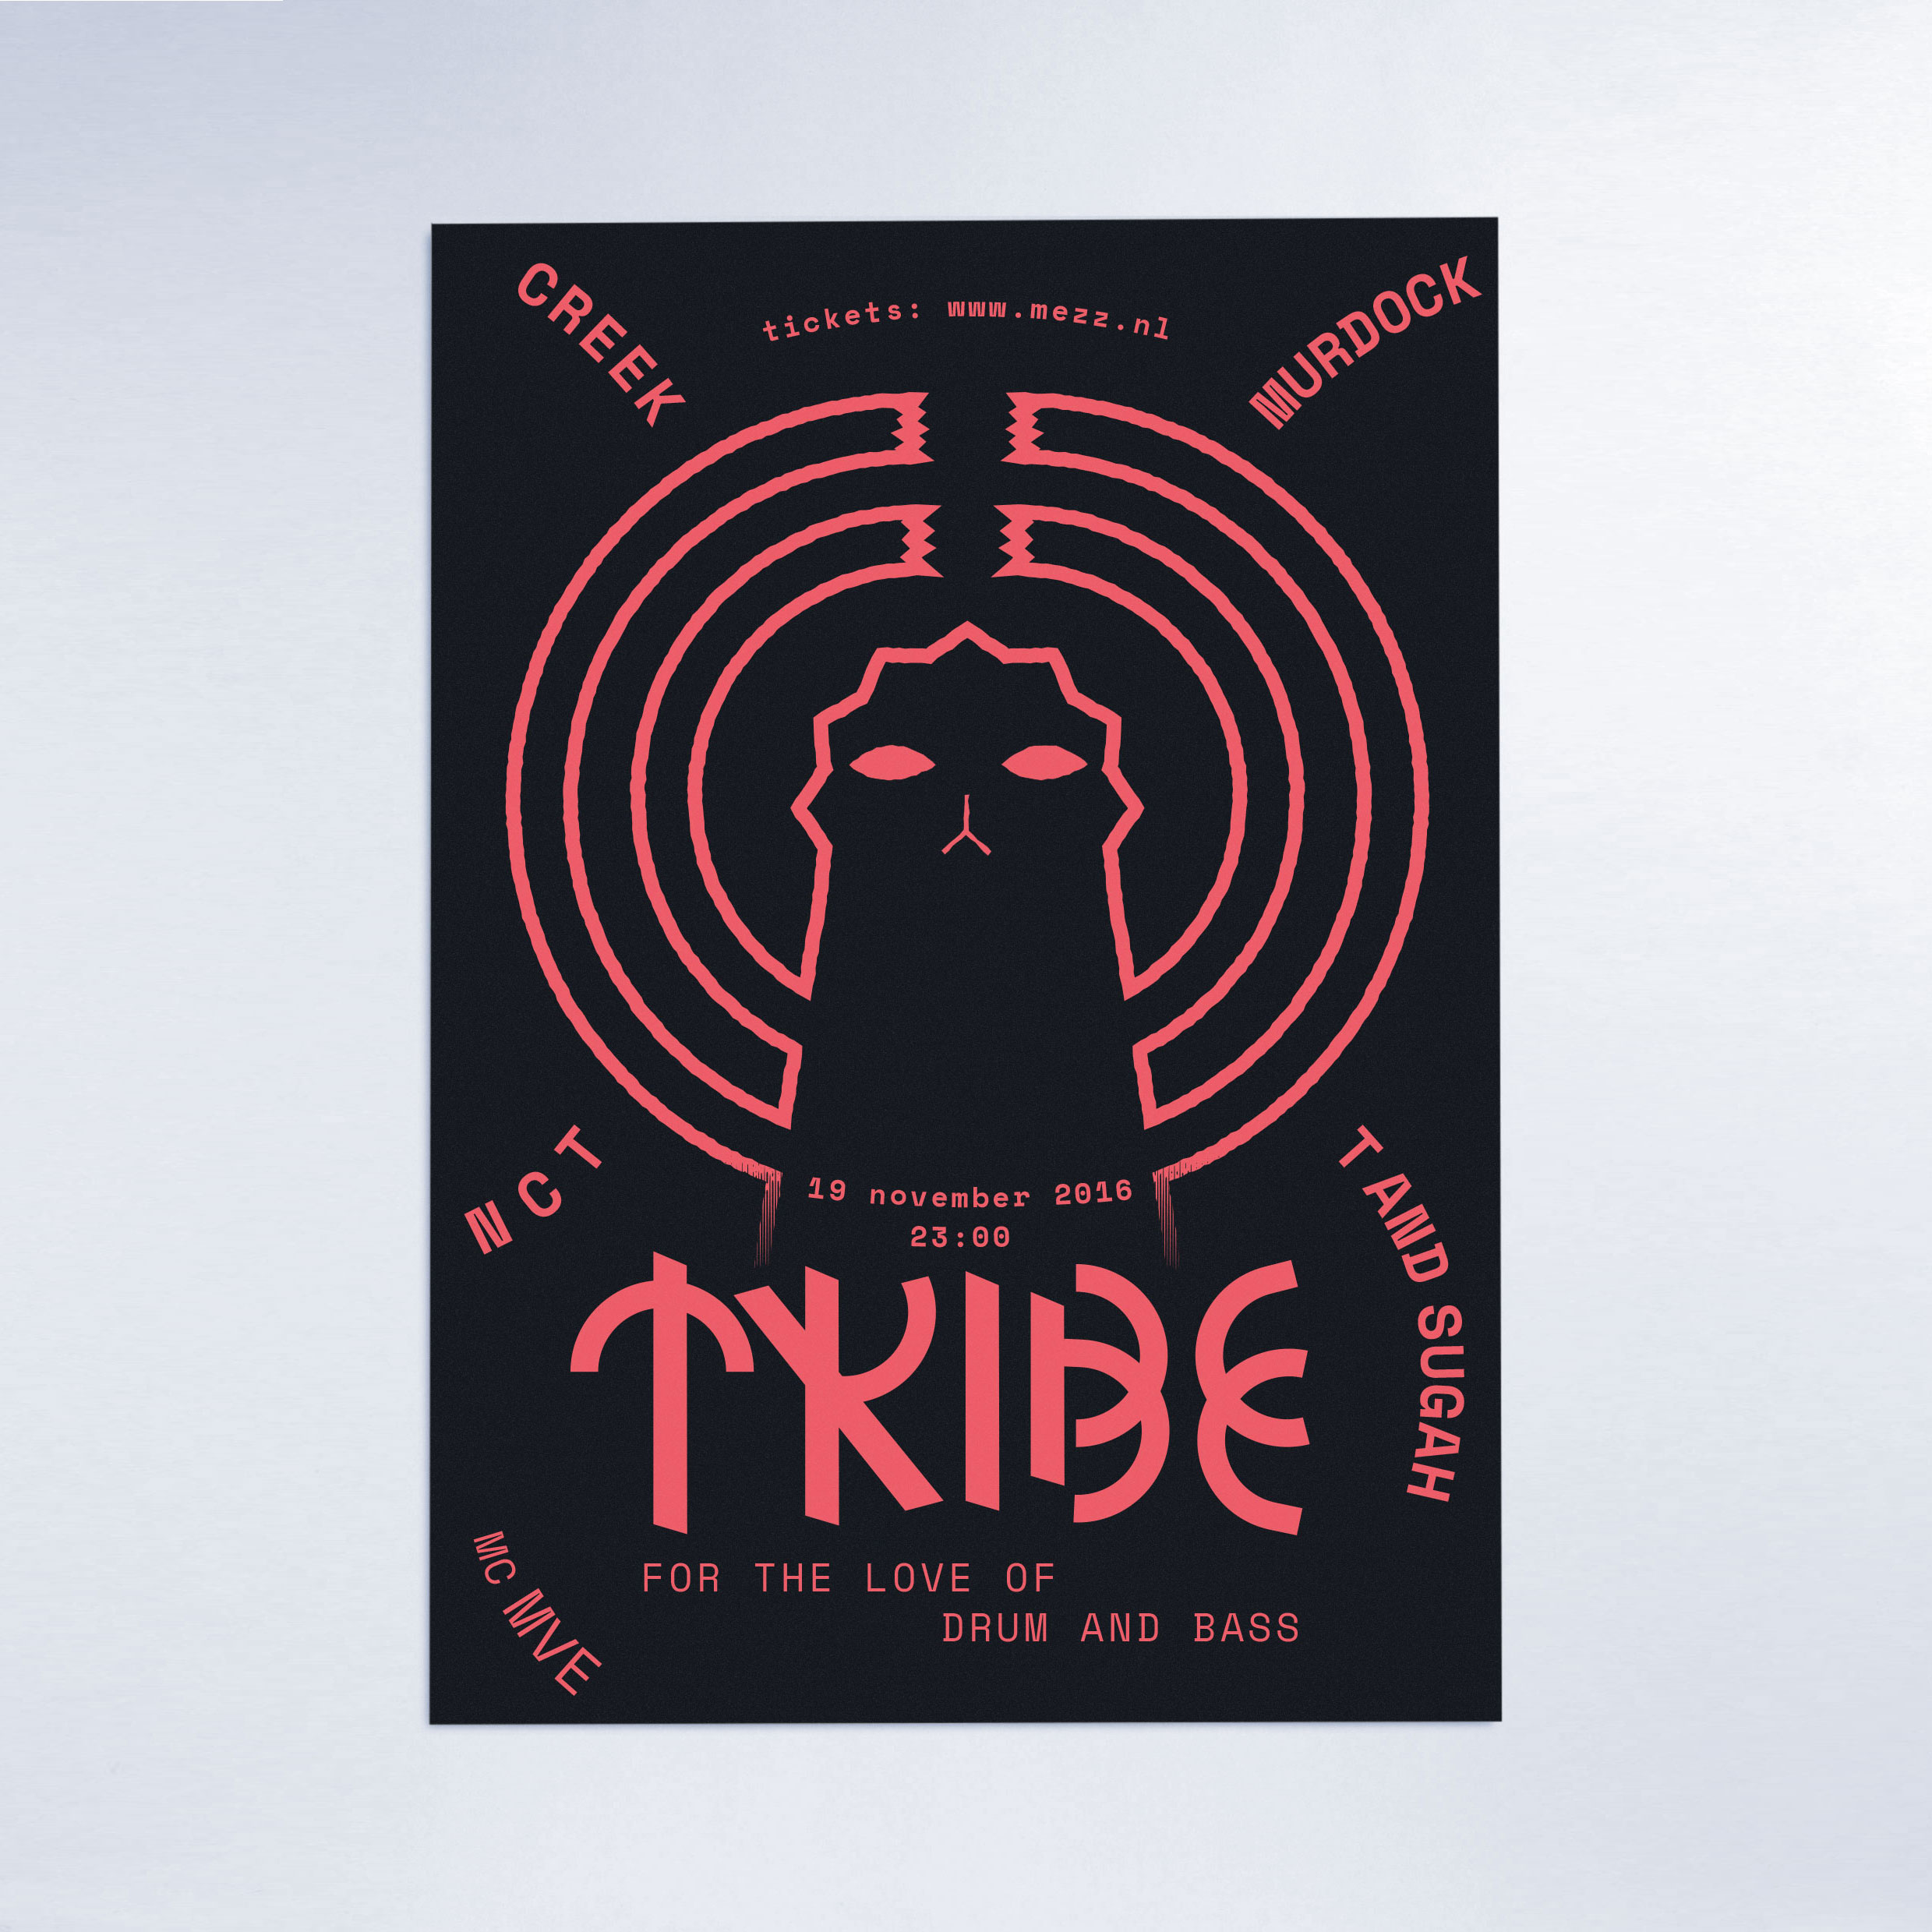 poster-mock-tribe-2